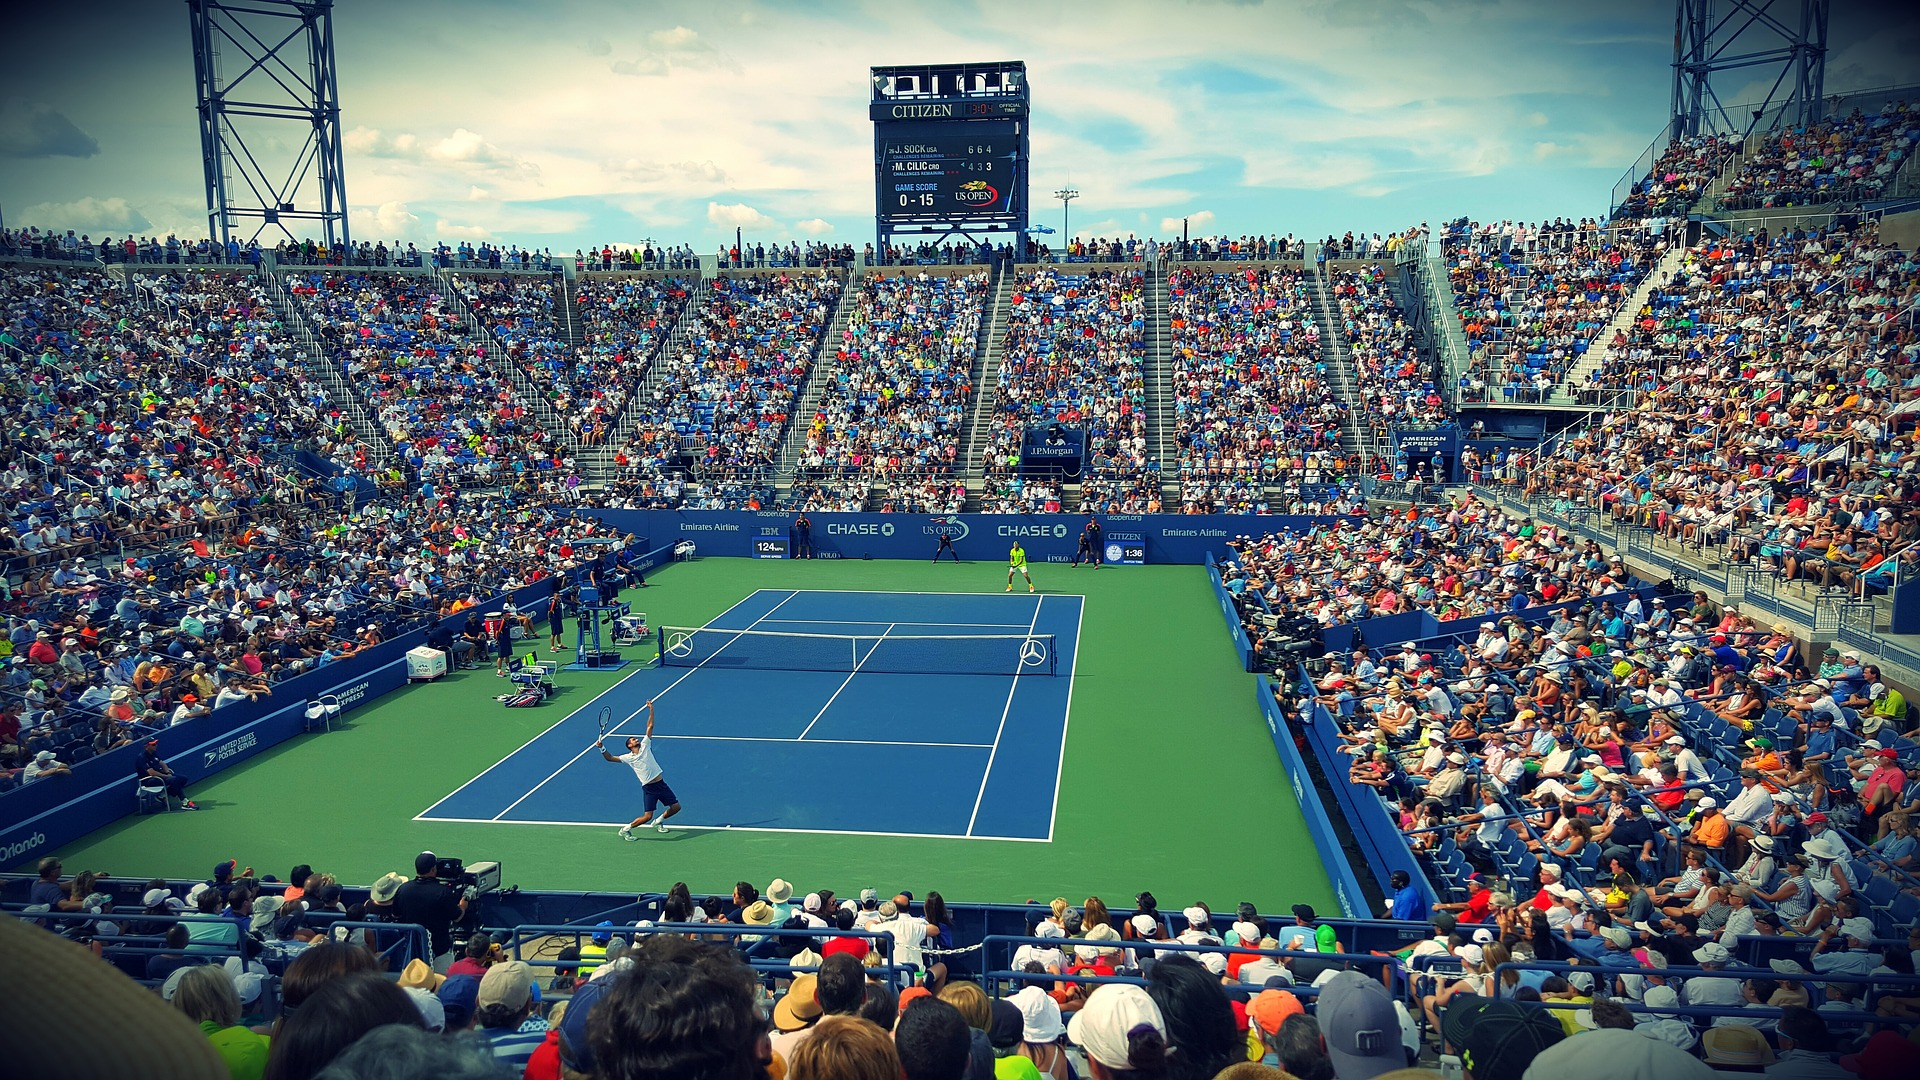 How to calculate Arbitrage Winnings in a tennis-match.